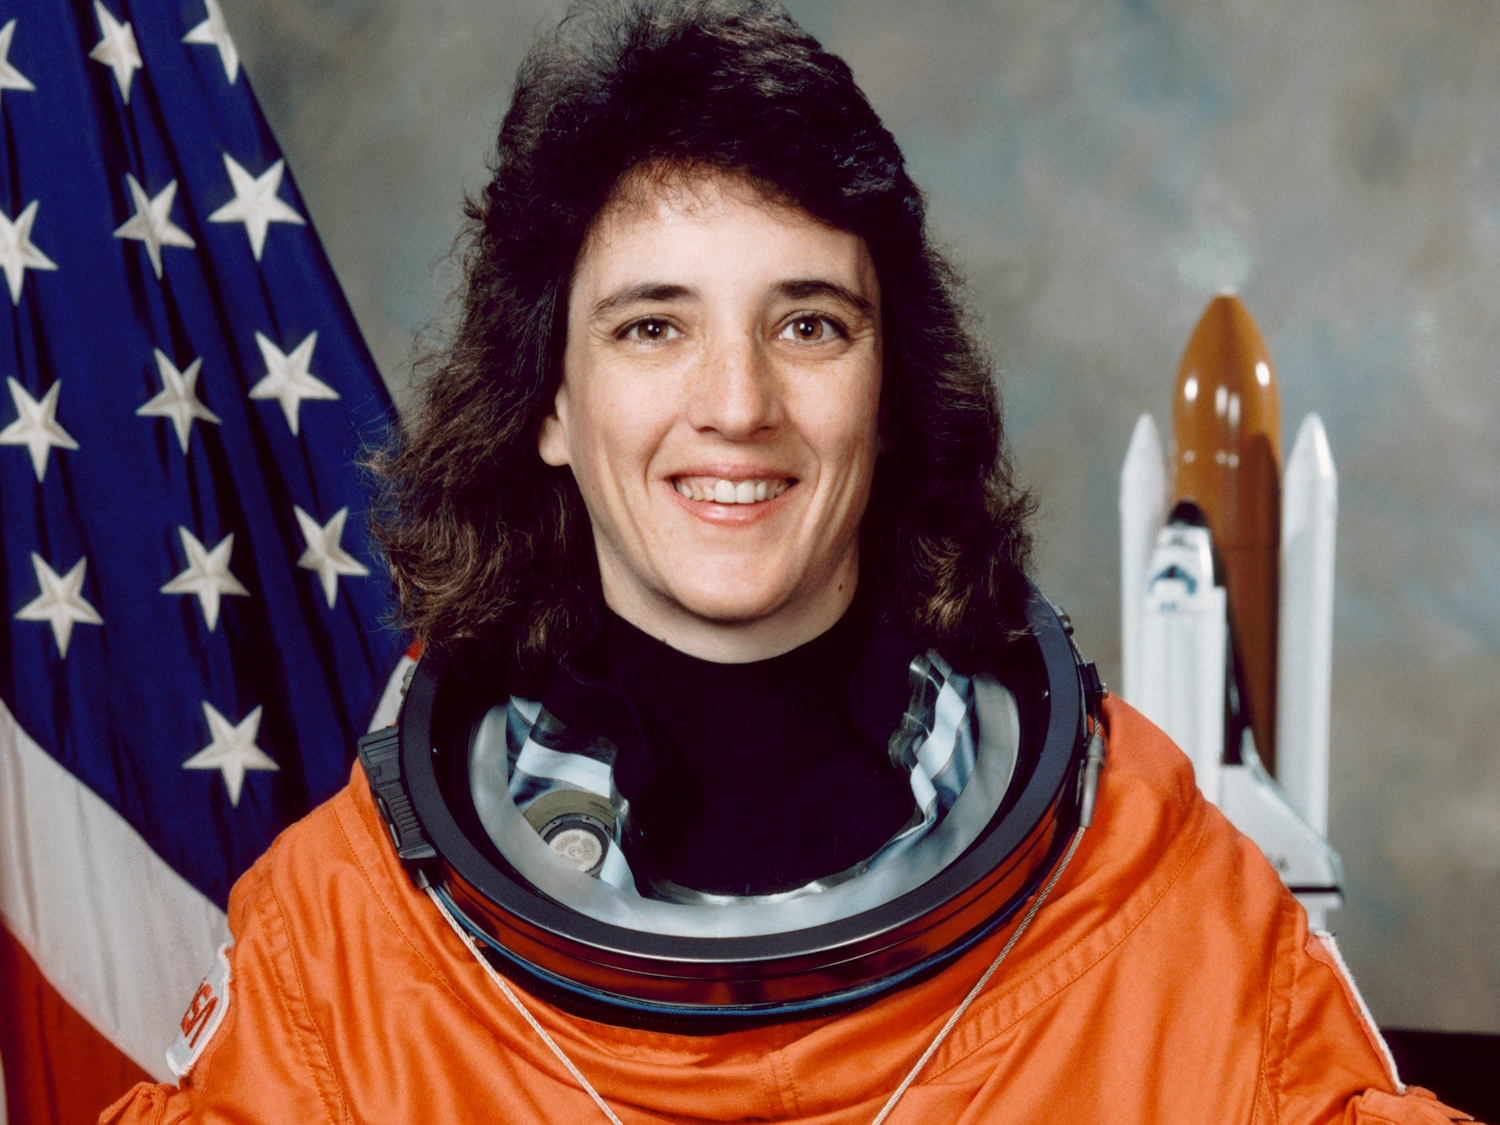 Nancy Currie, STS-70 Mission Specialist #2